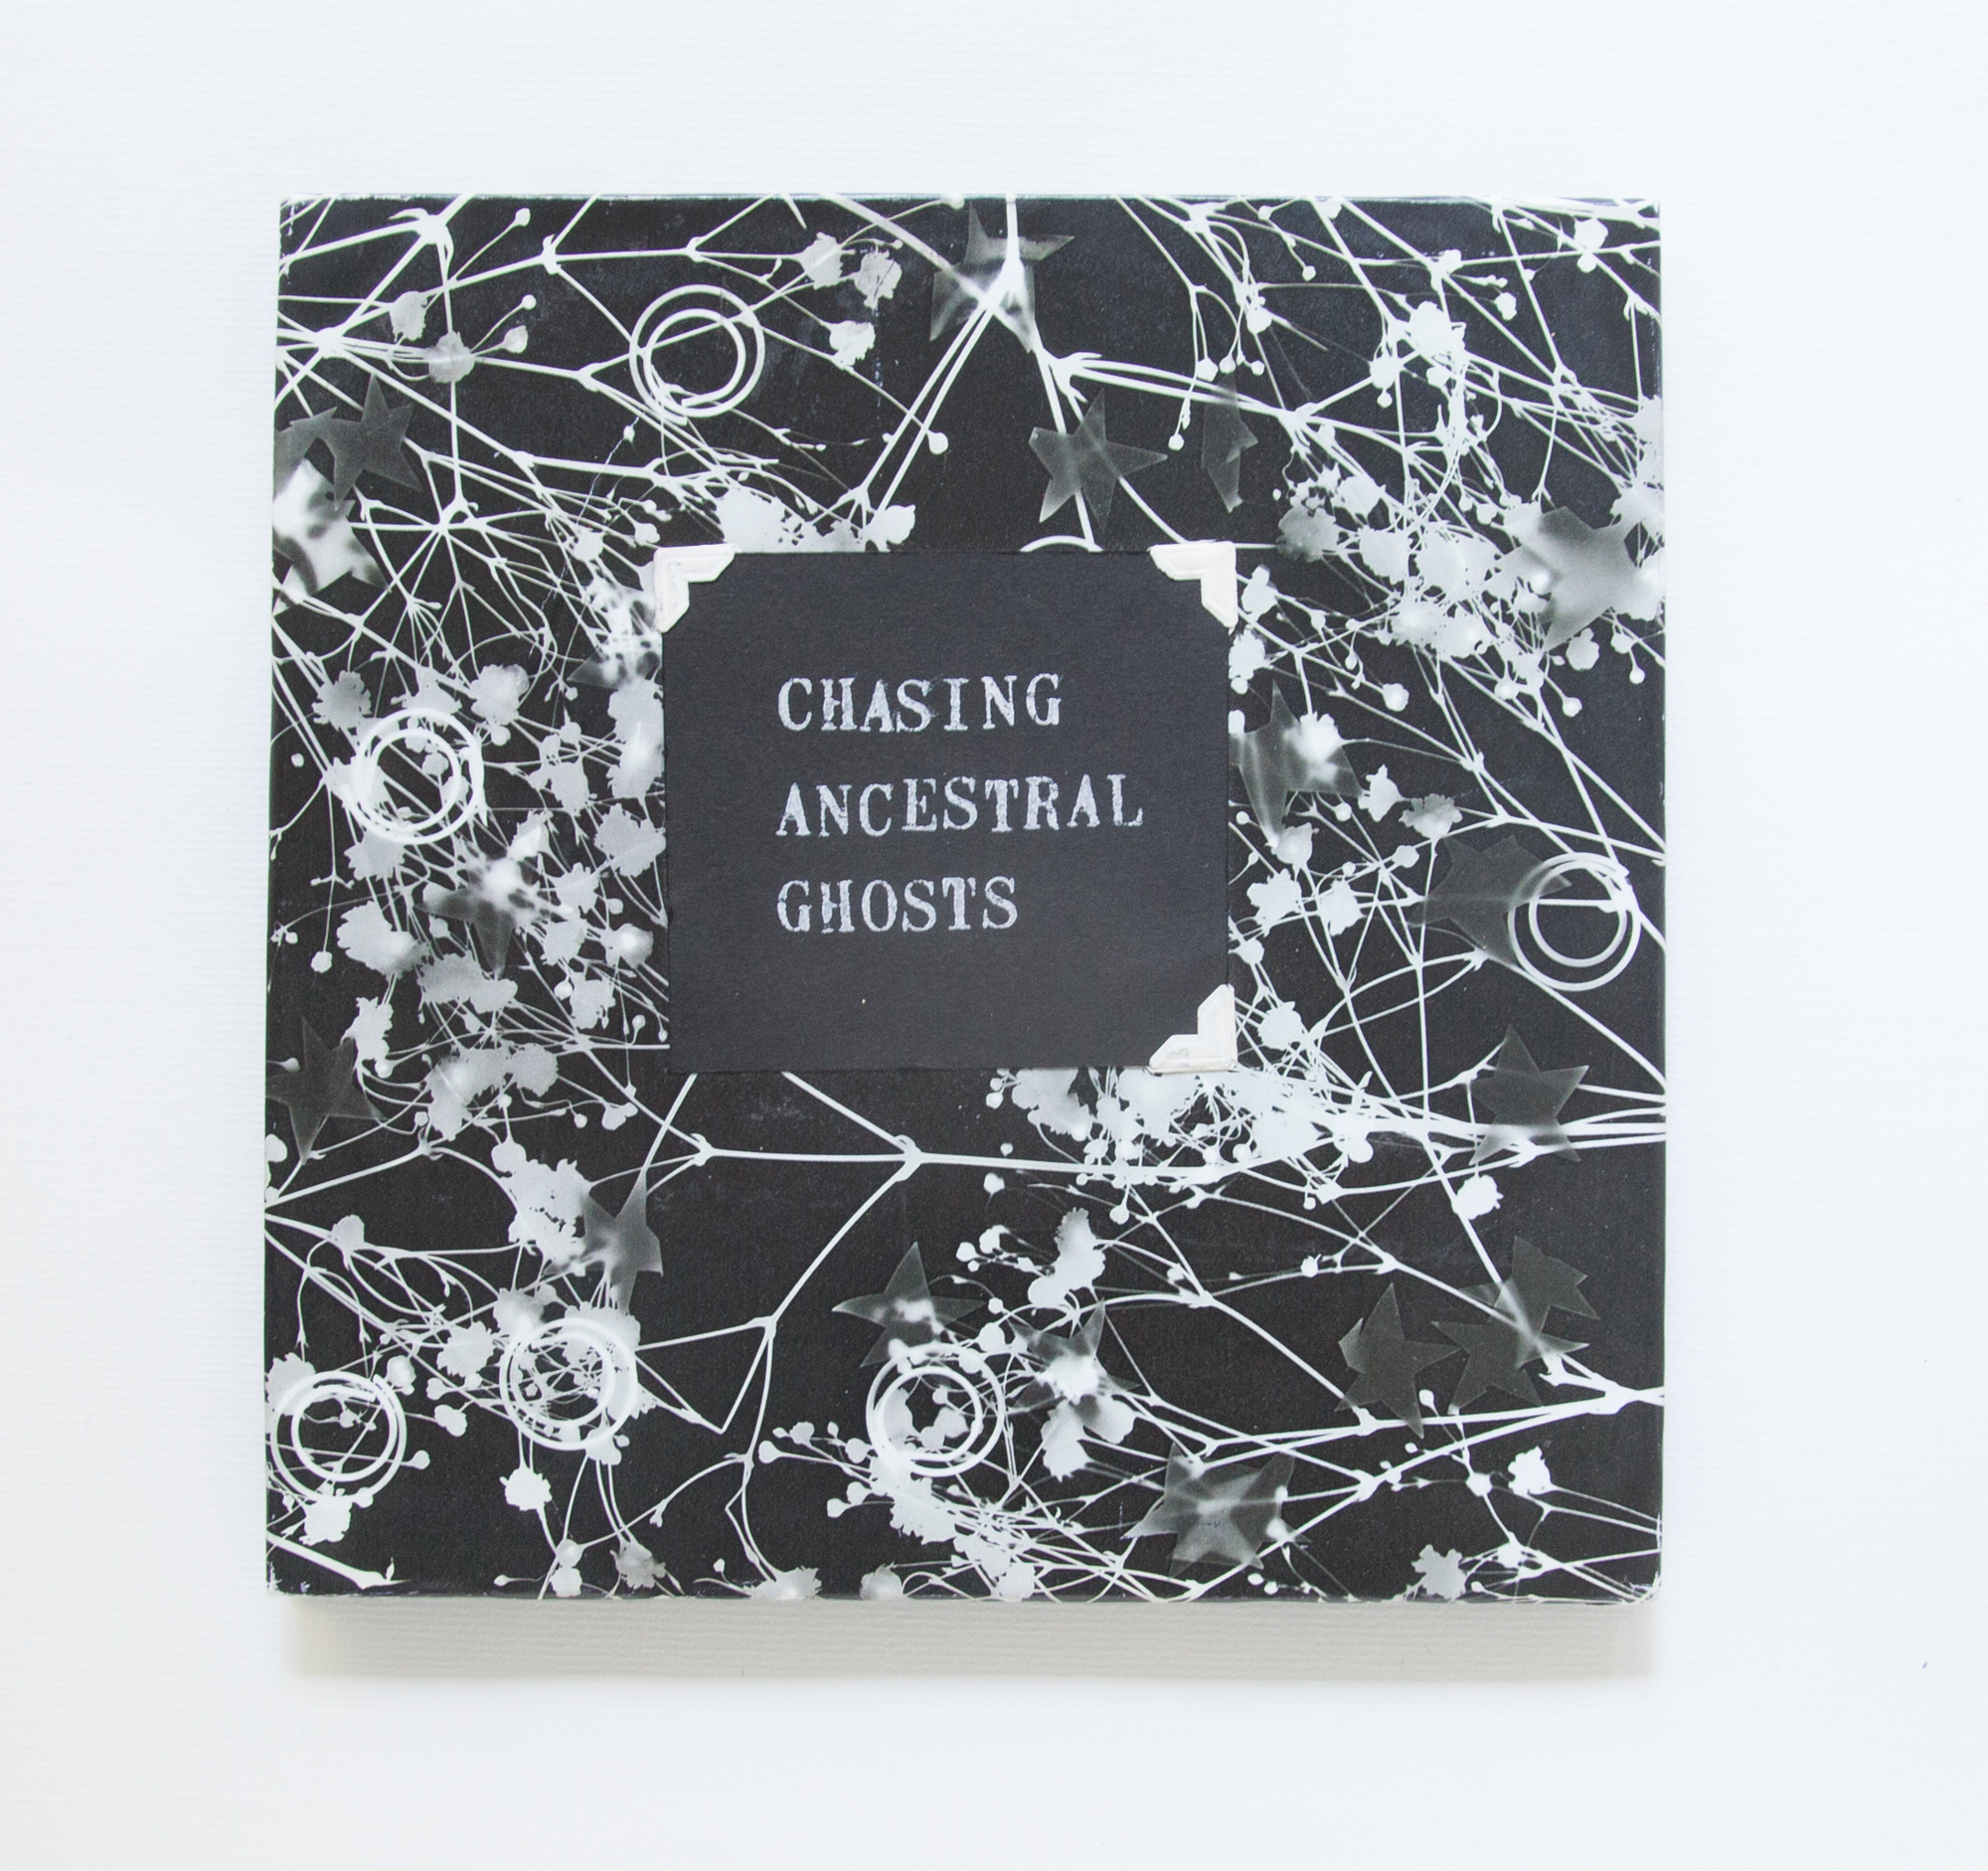 190_Chasing Ancestral Ghosts-cover (2003)_.jpg